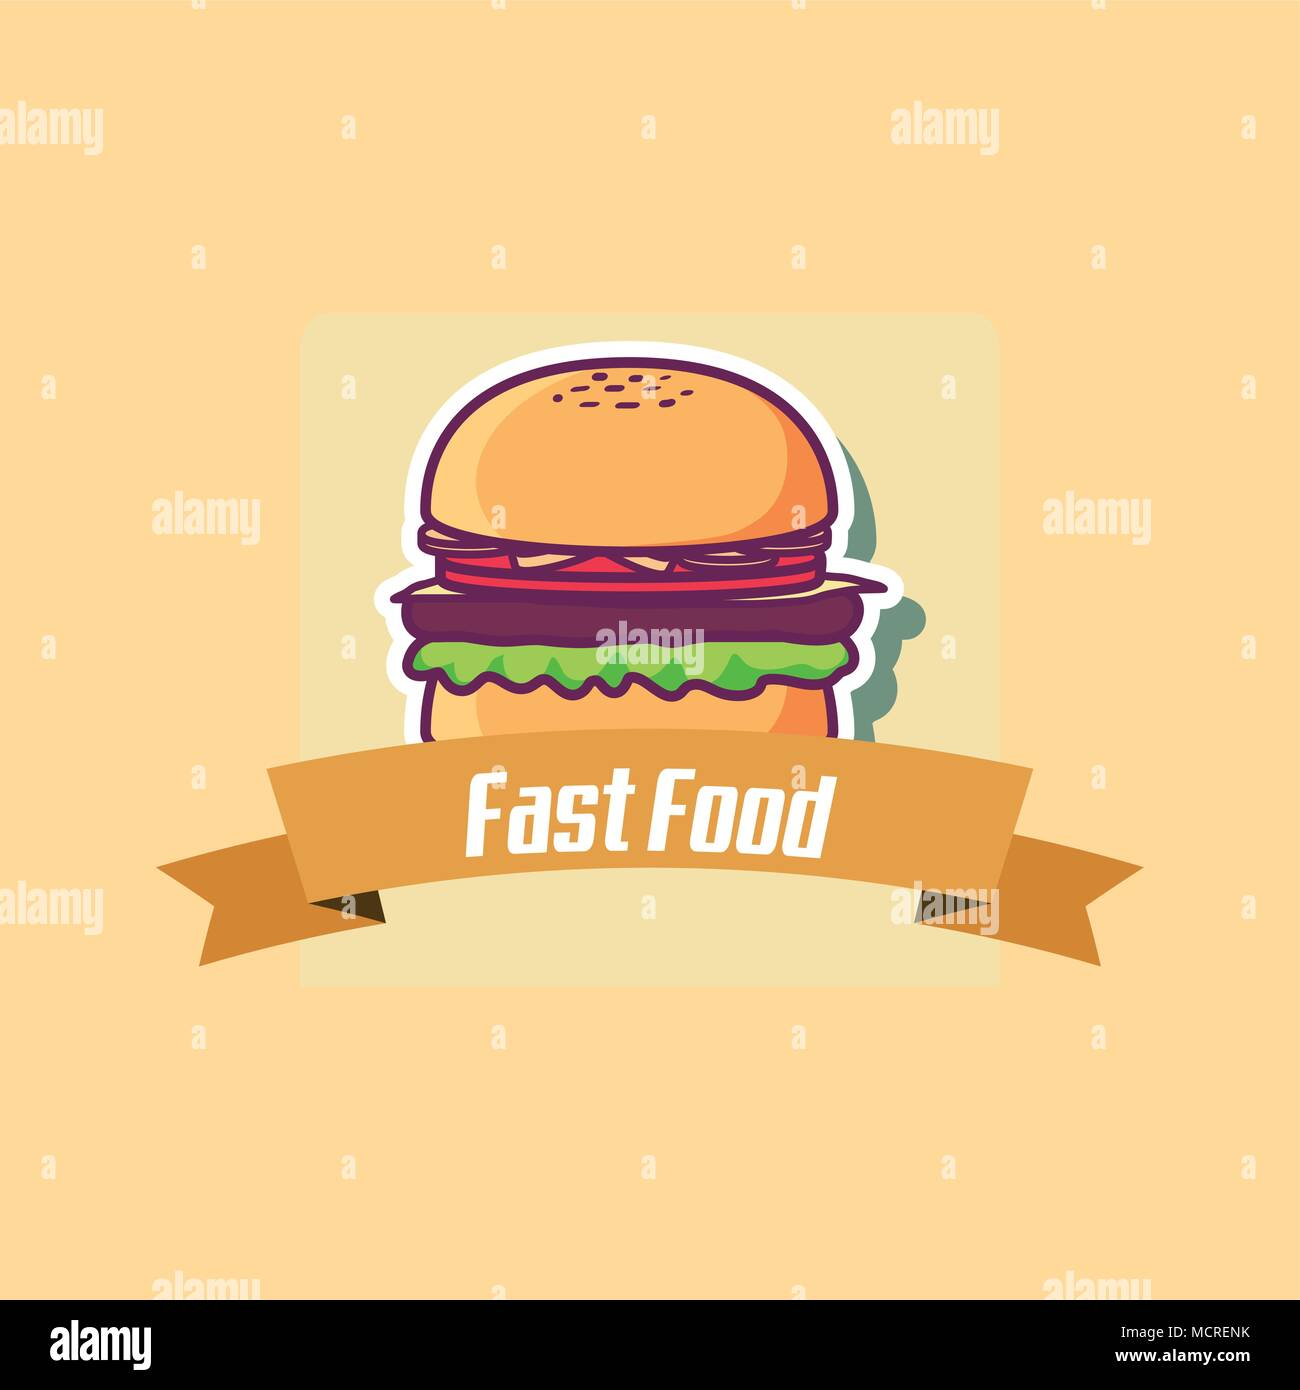 Emblem of fast food concept with hamburger icon and decorative ribbon over orange background, colorful design. vector illustration - Stock Vector